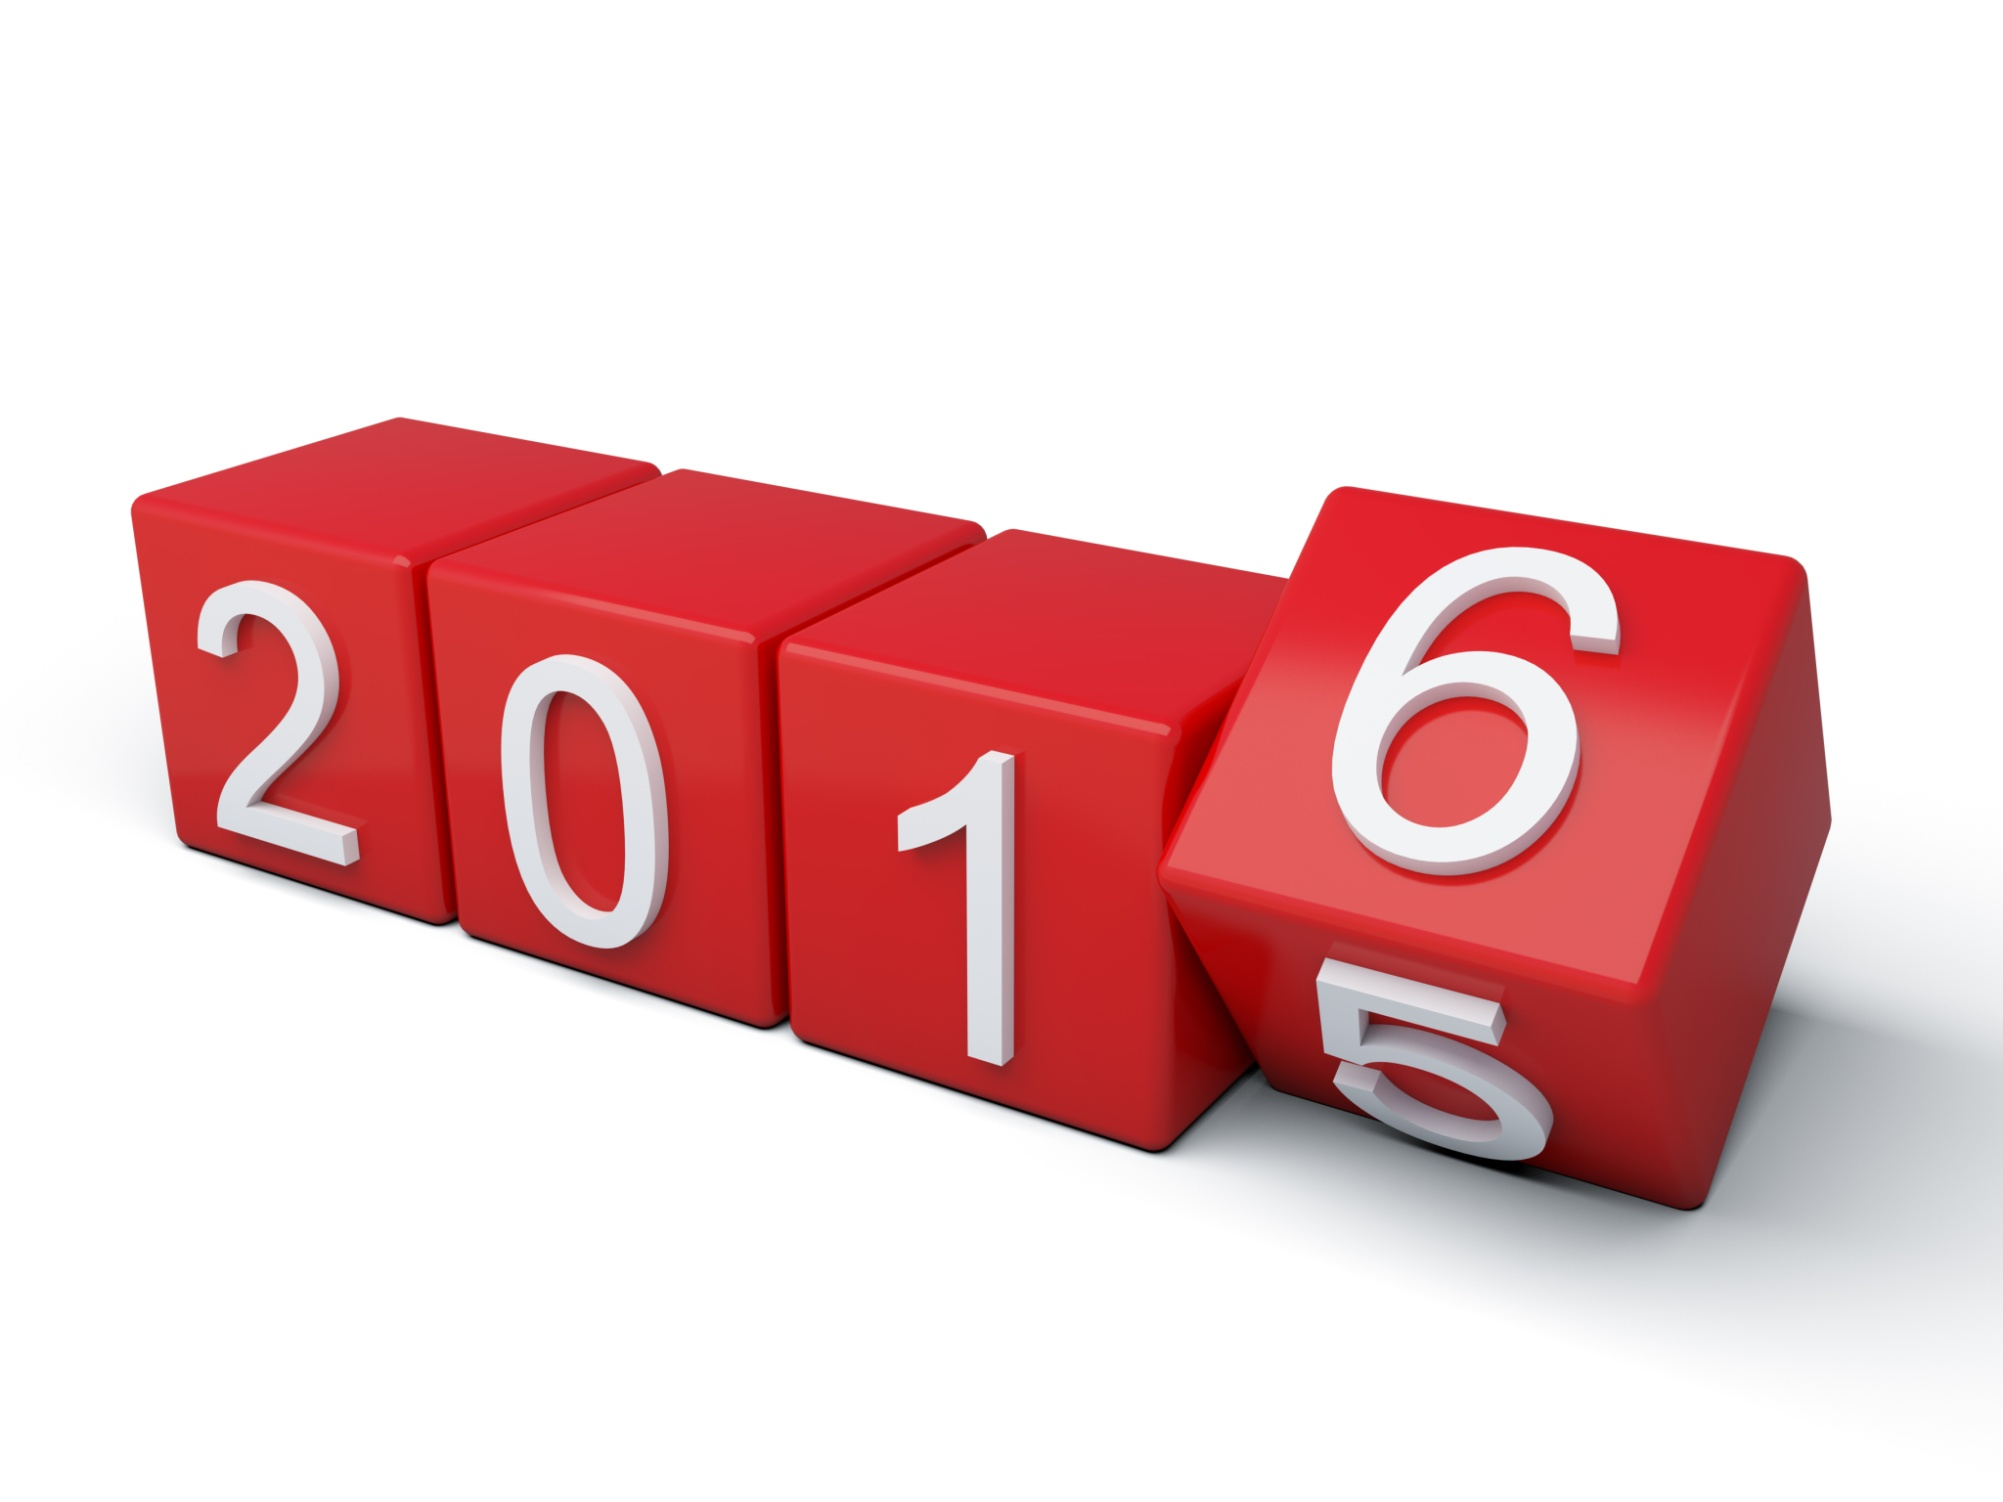 What's Coming in 2016? Data Security, Social Media and a Busy SEC